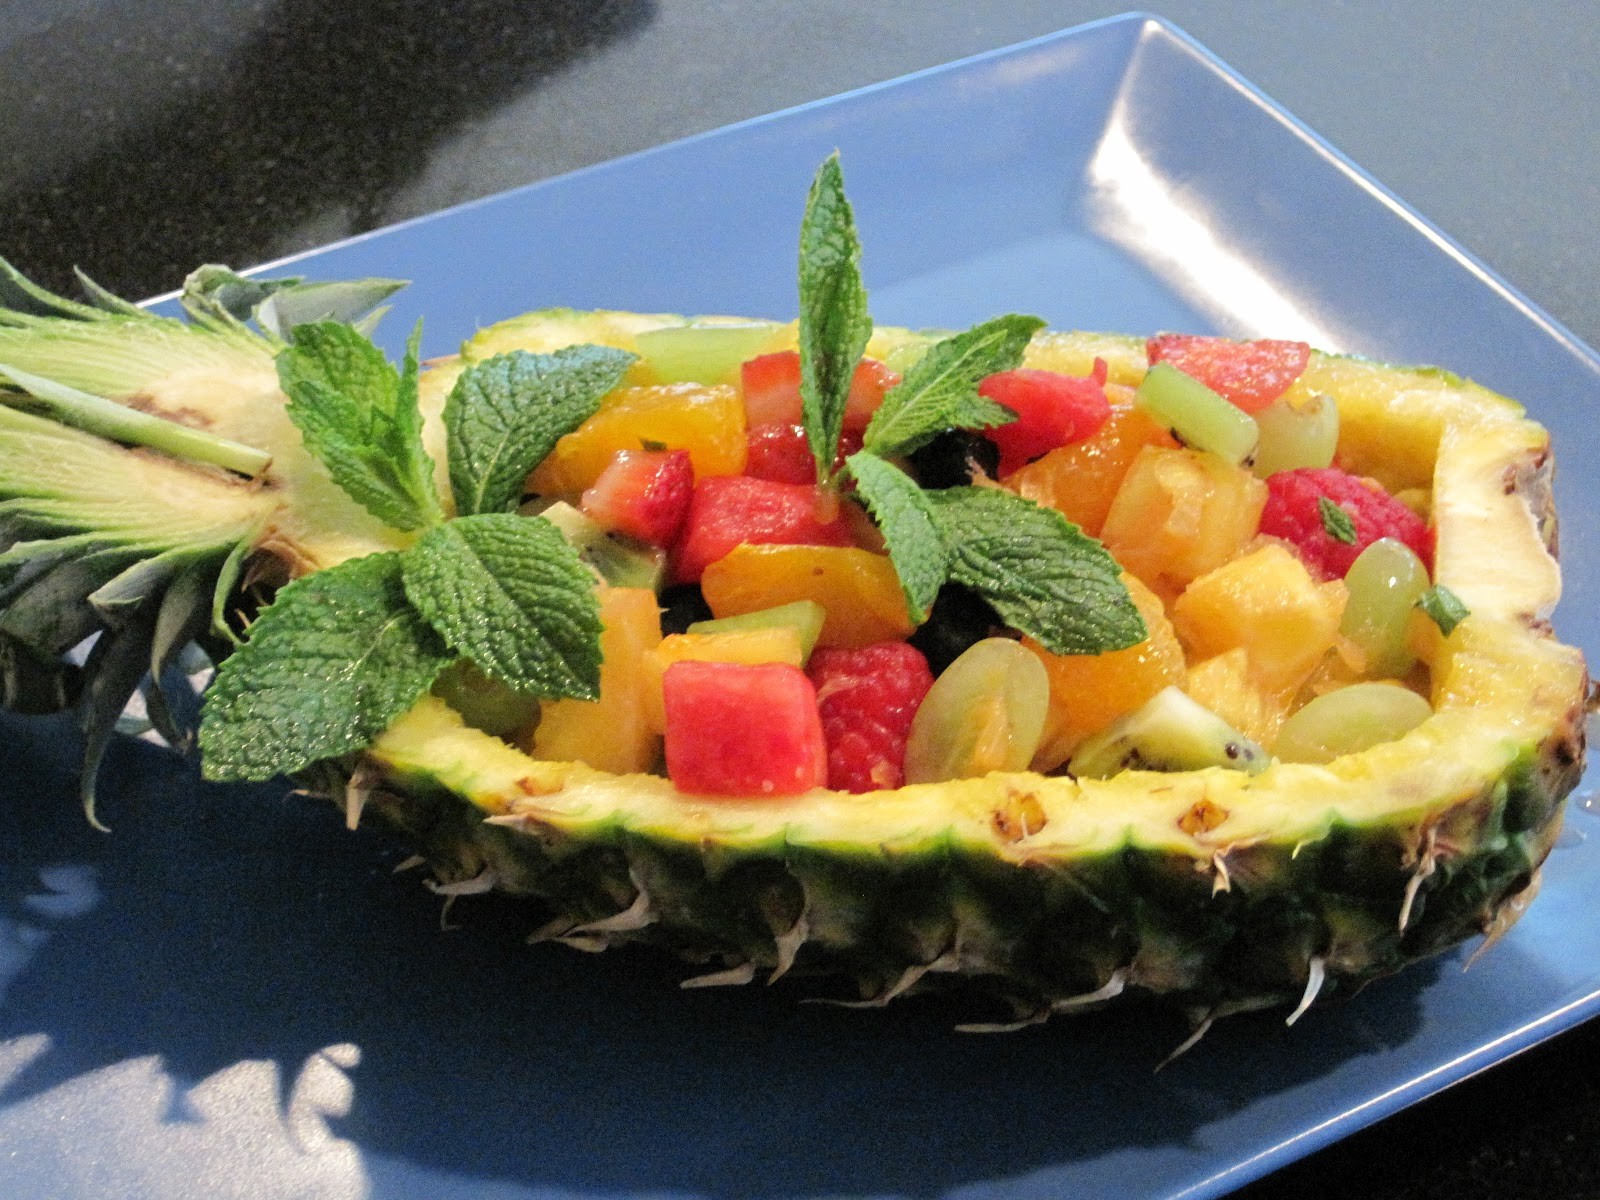 pineapple boat fruit salad 1 large pineapple carefully cut in